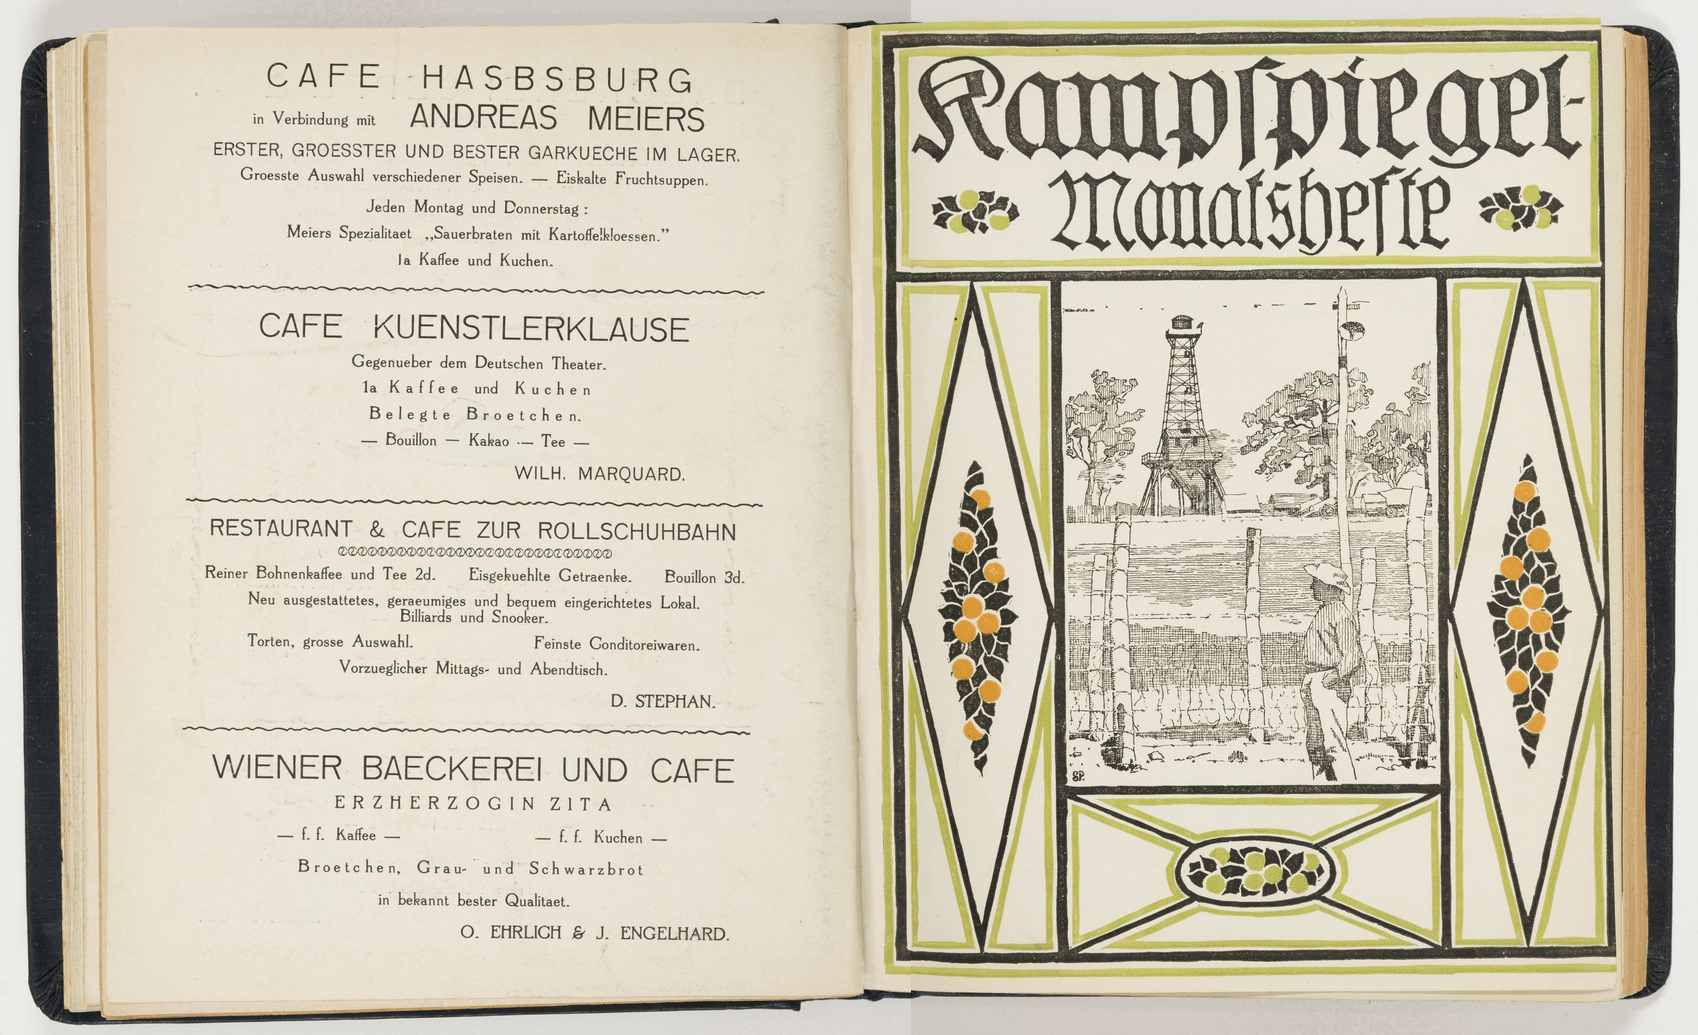 Book open to a page showing advertisements in German.